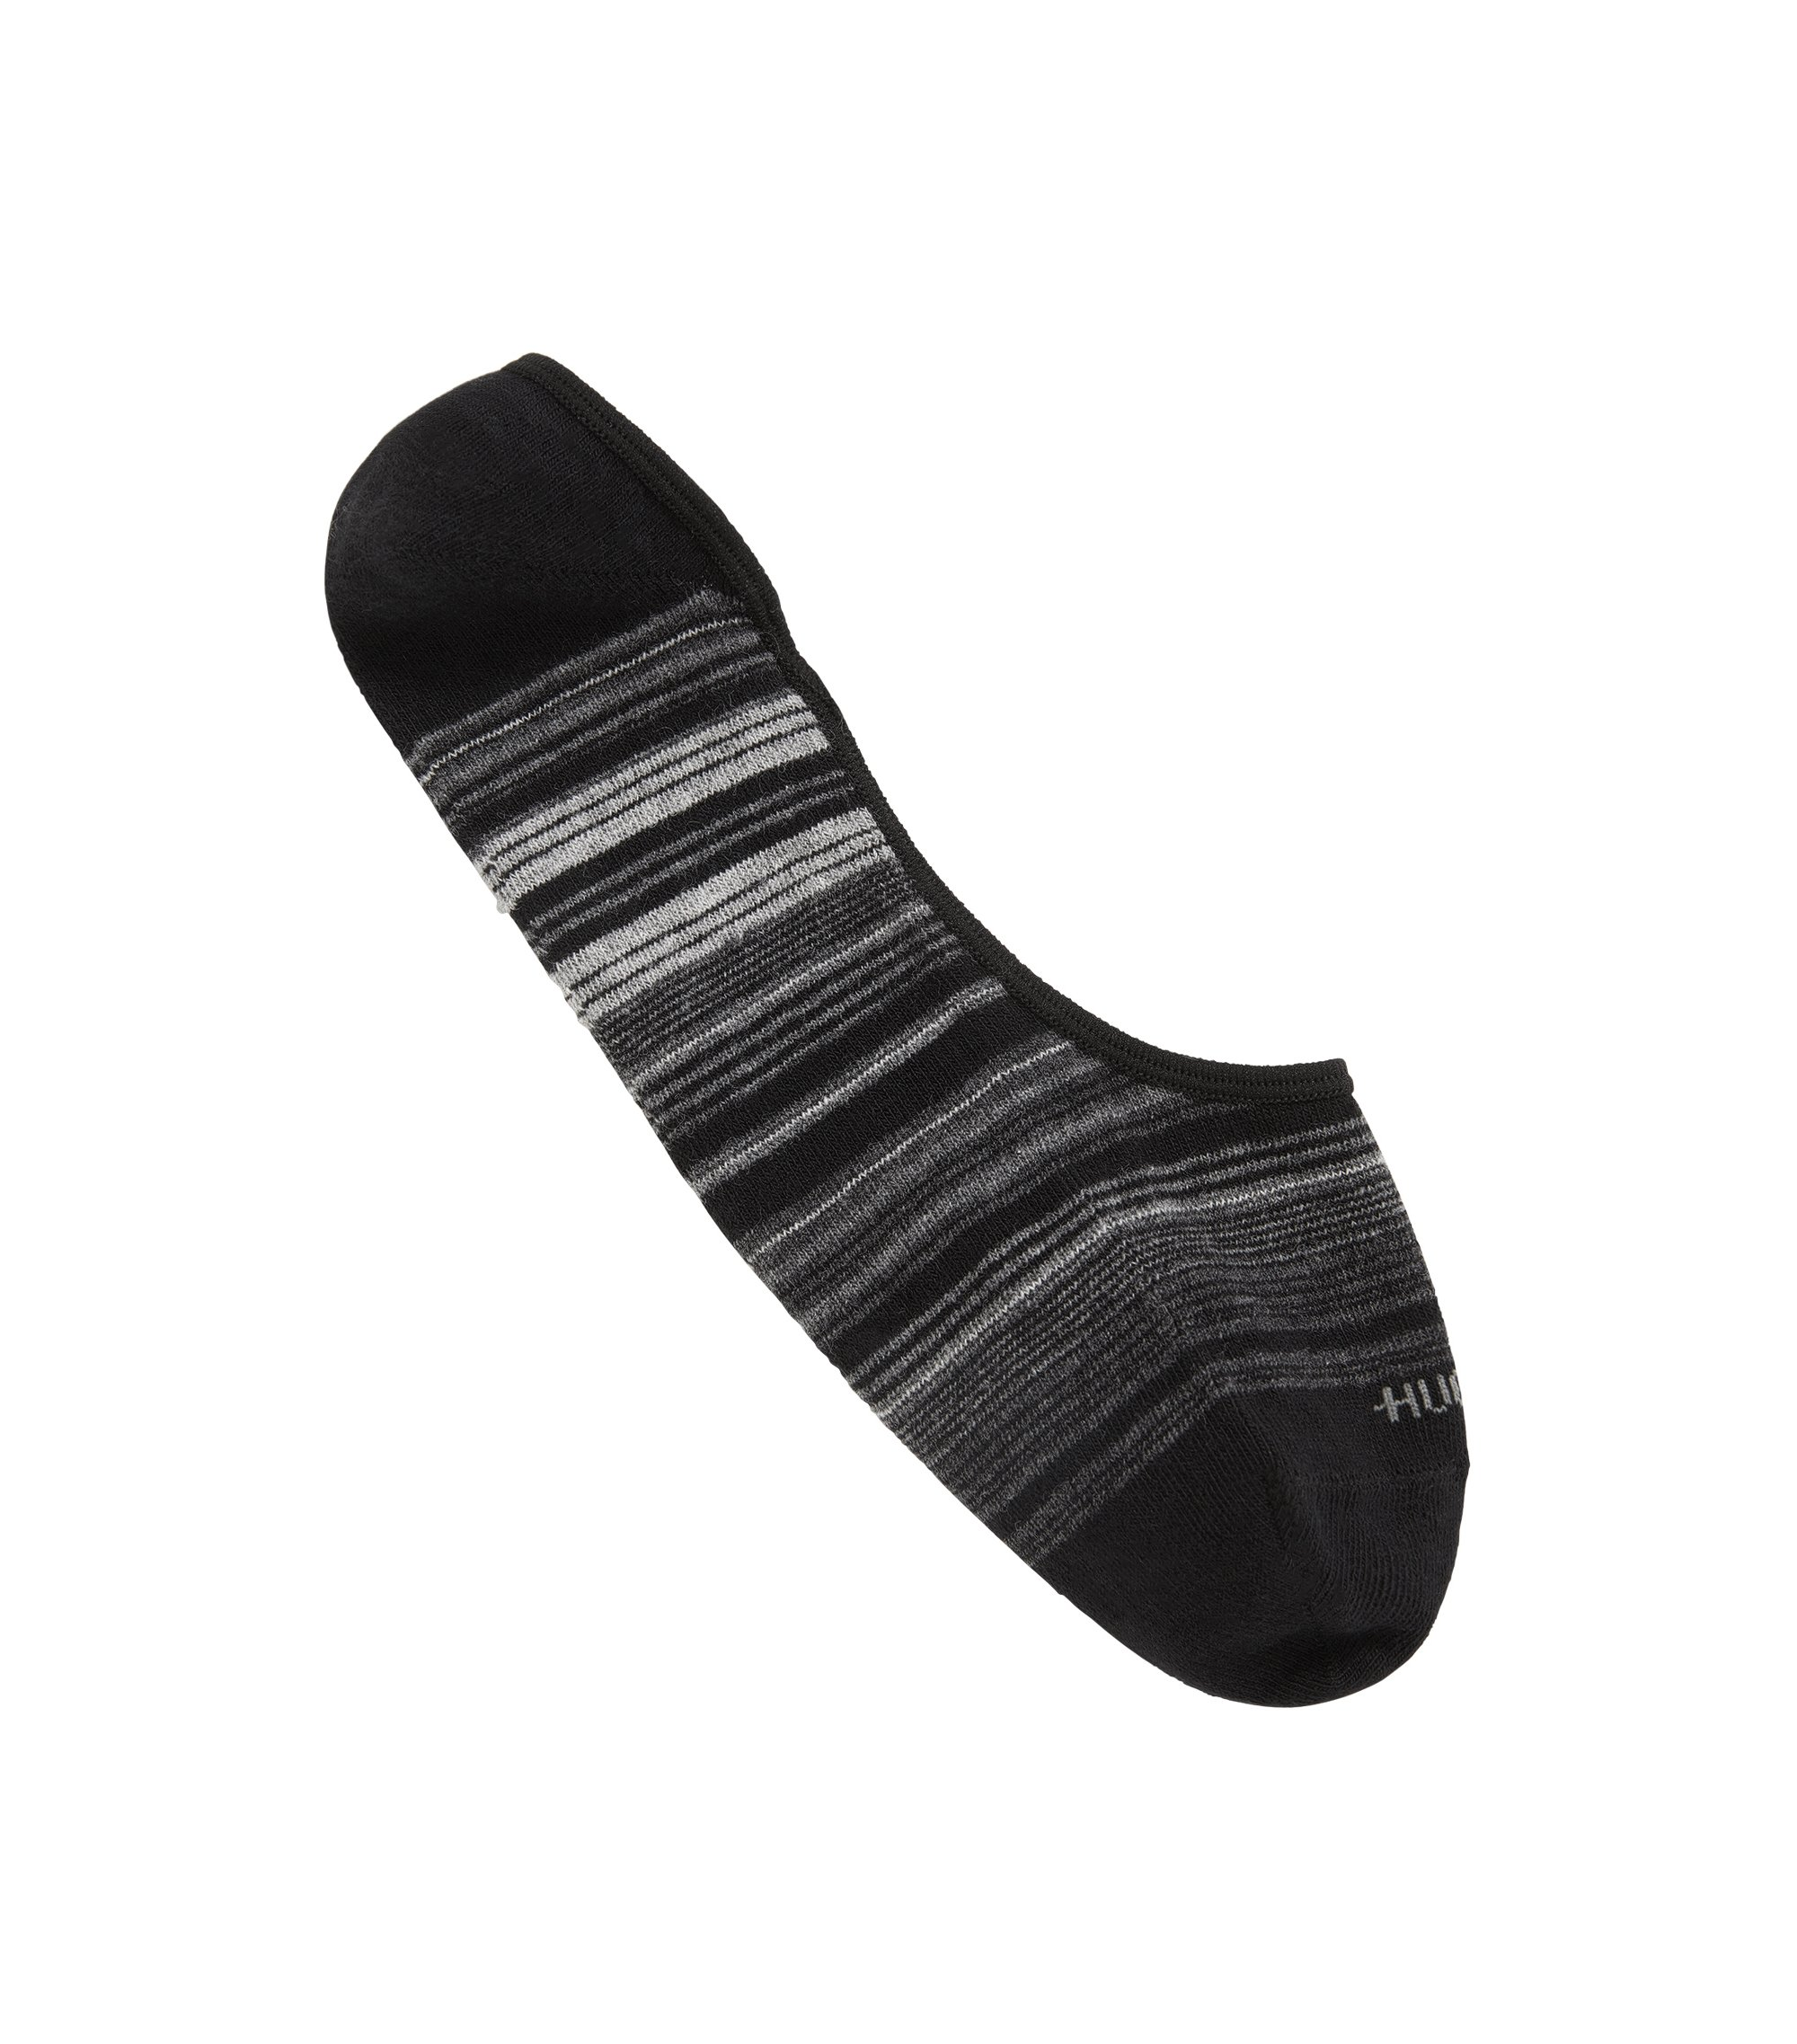 Cotton-blend invisible socks with combed finish, Zwart